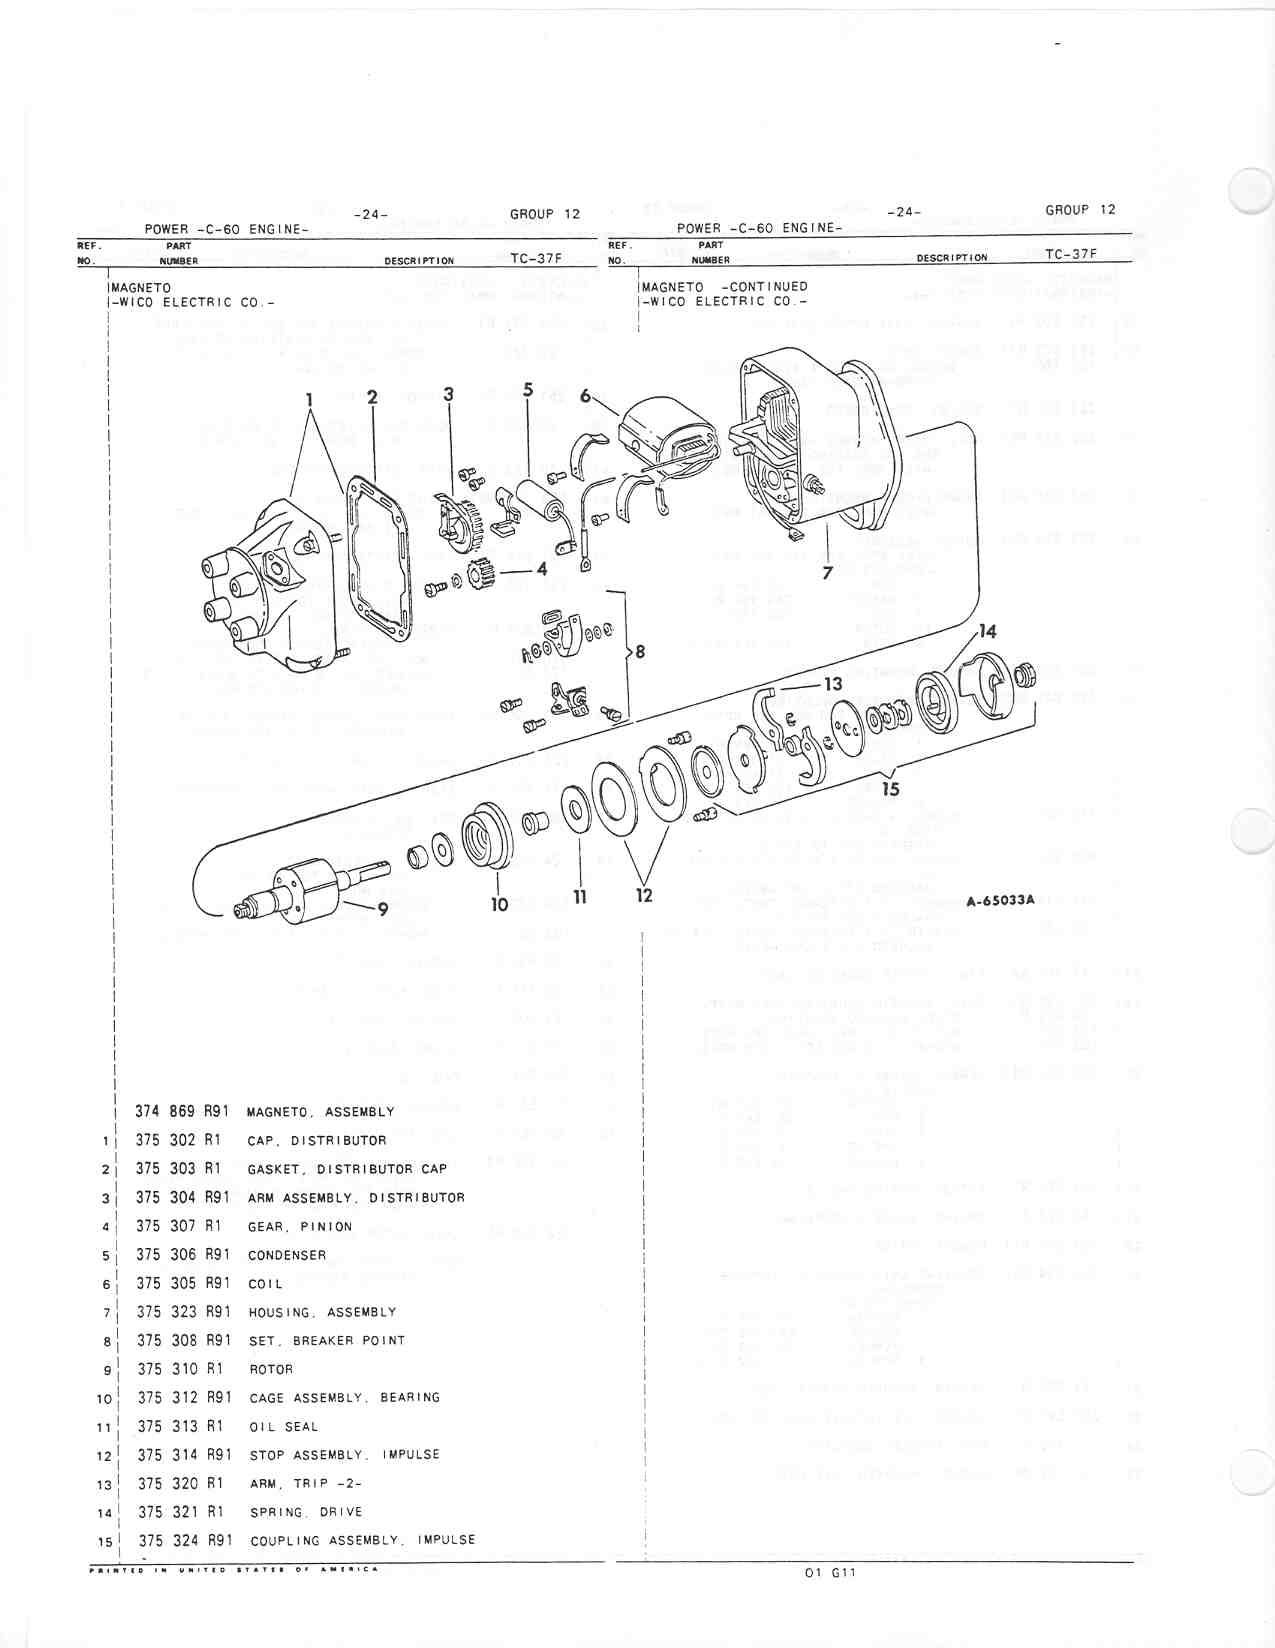 Switching ignition system - Farmall Cub